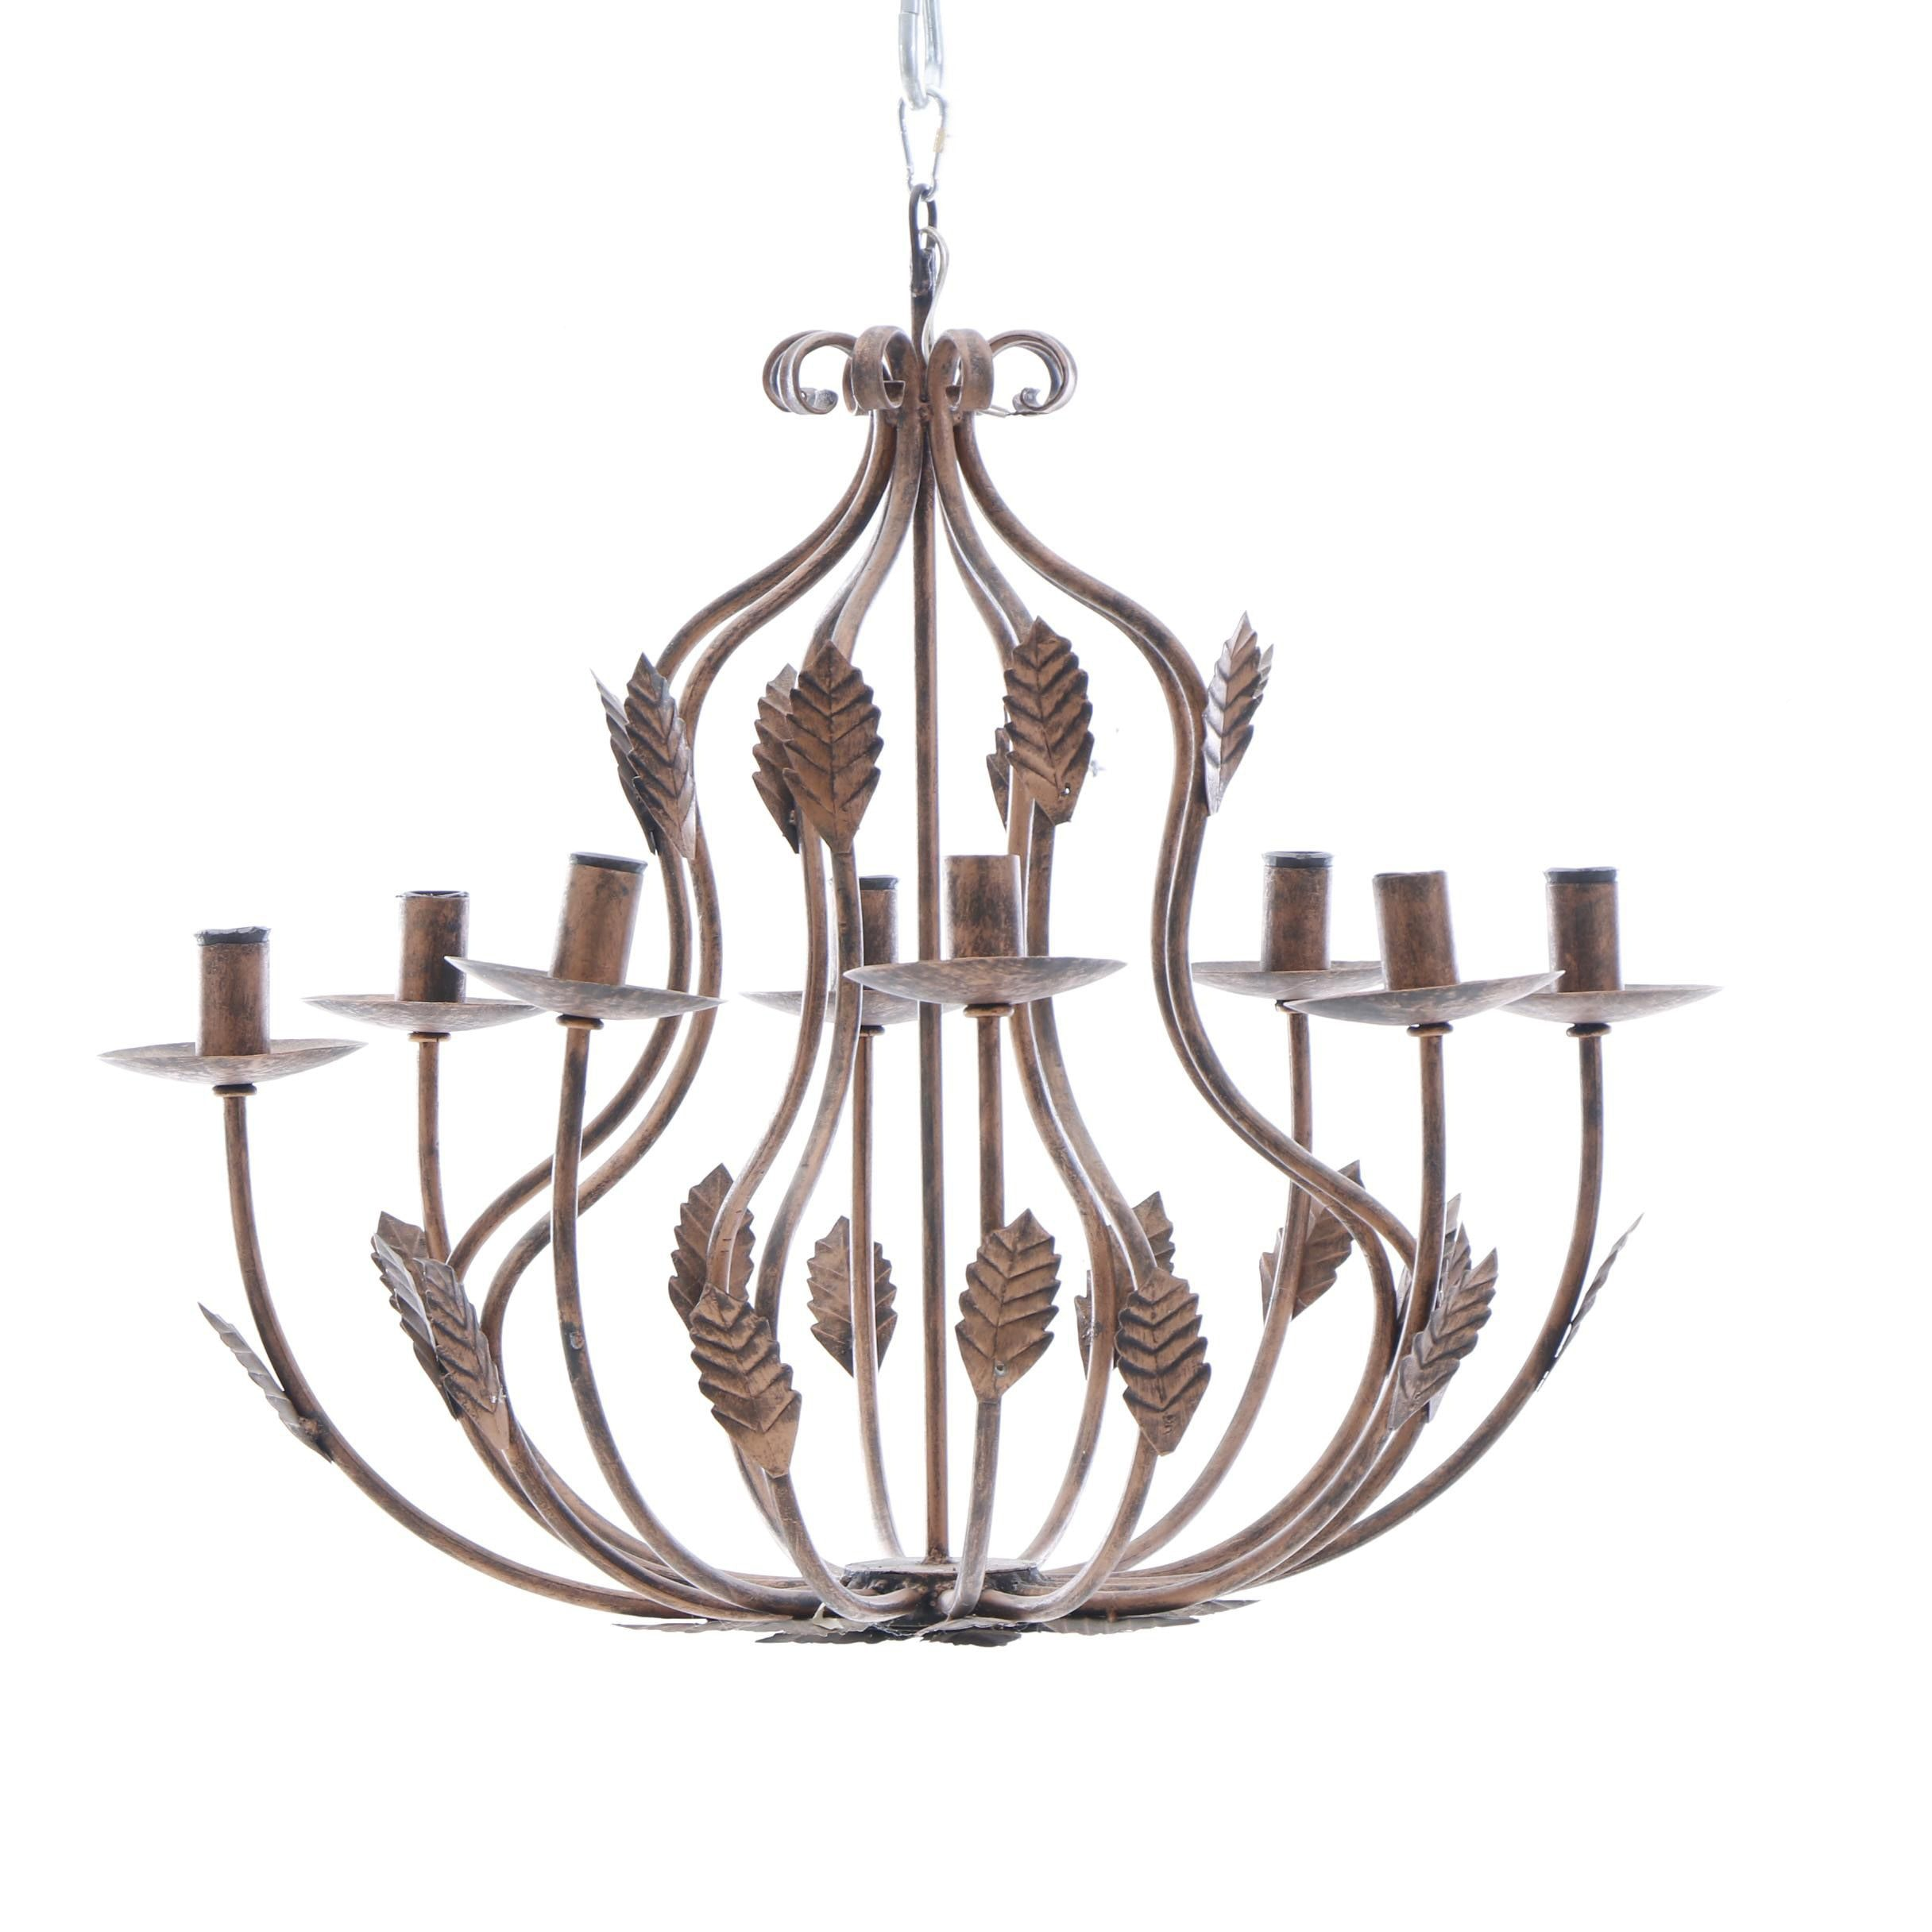 Aged Copper Finish Chandelier